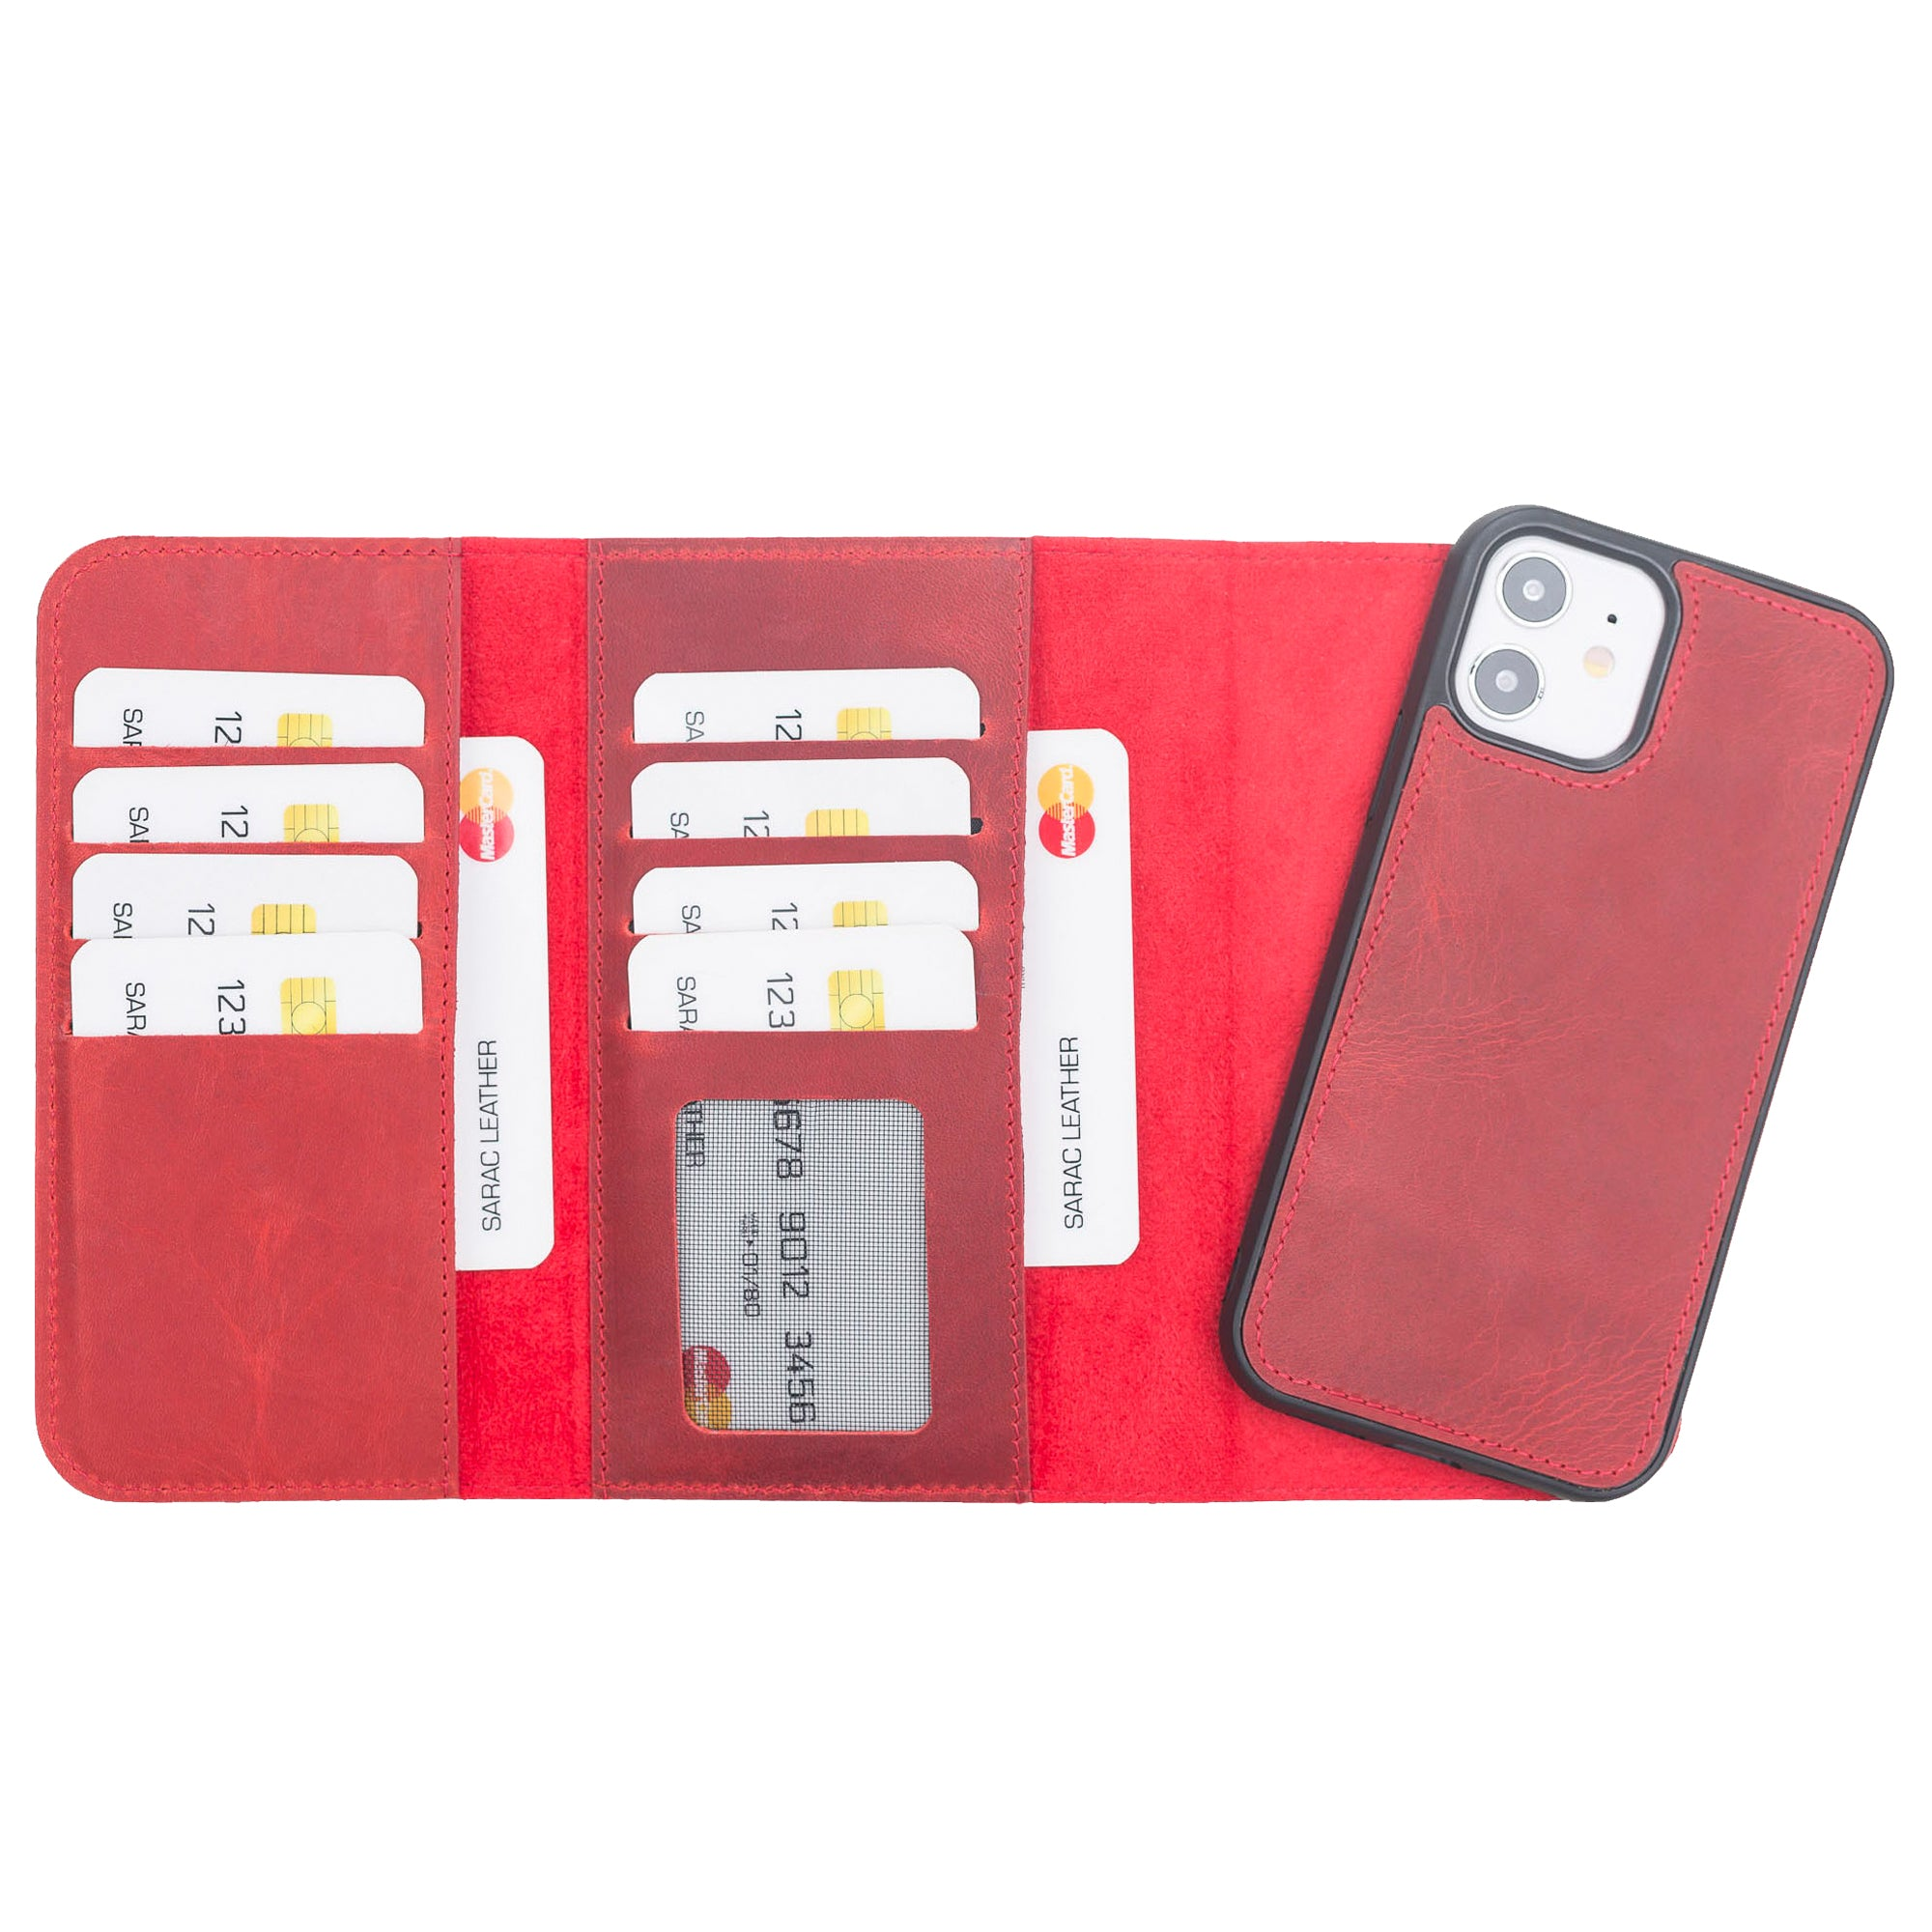 "Santa Magnetic Detachable Leather Wallet Case for iPhone 12 (6.1"") - RED - saracleather"